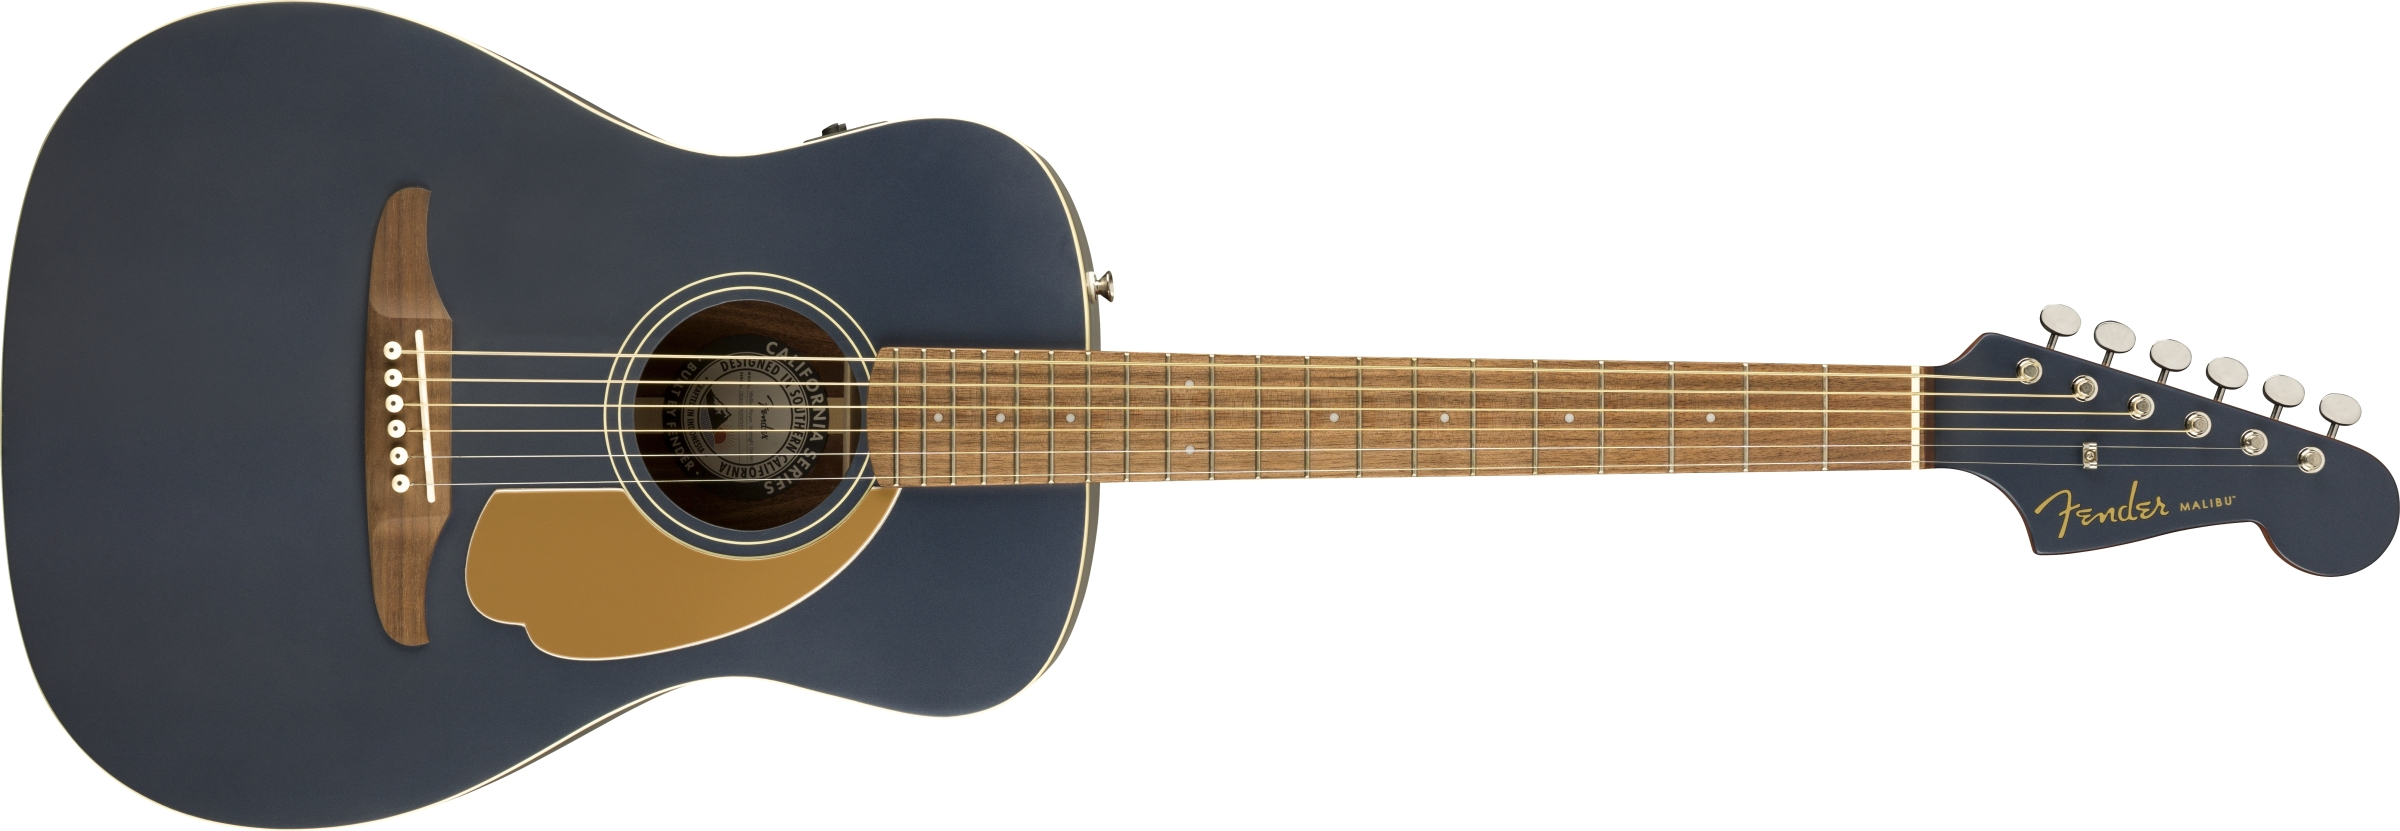 Image of Malibu Player Midnight Satin coming soon